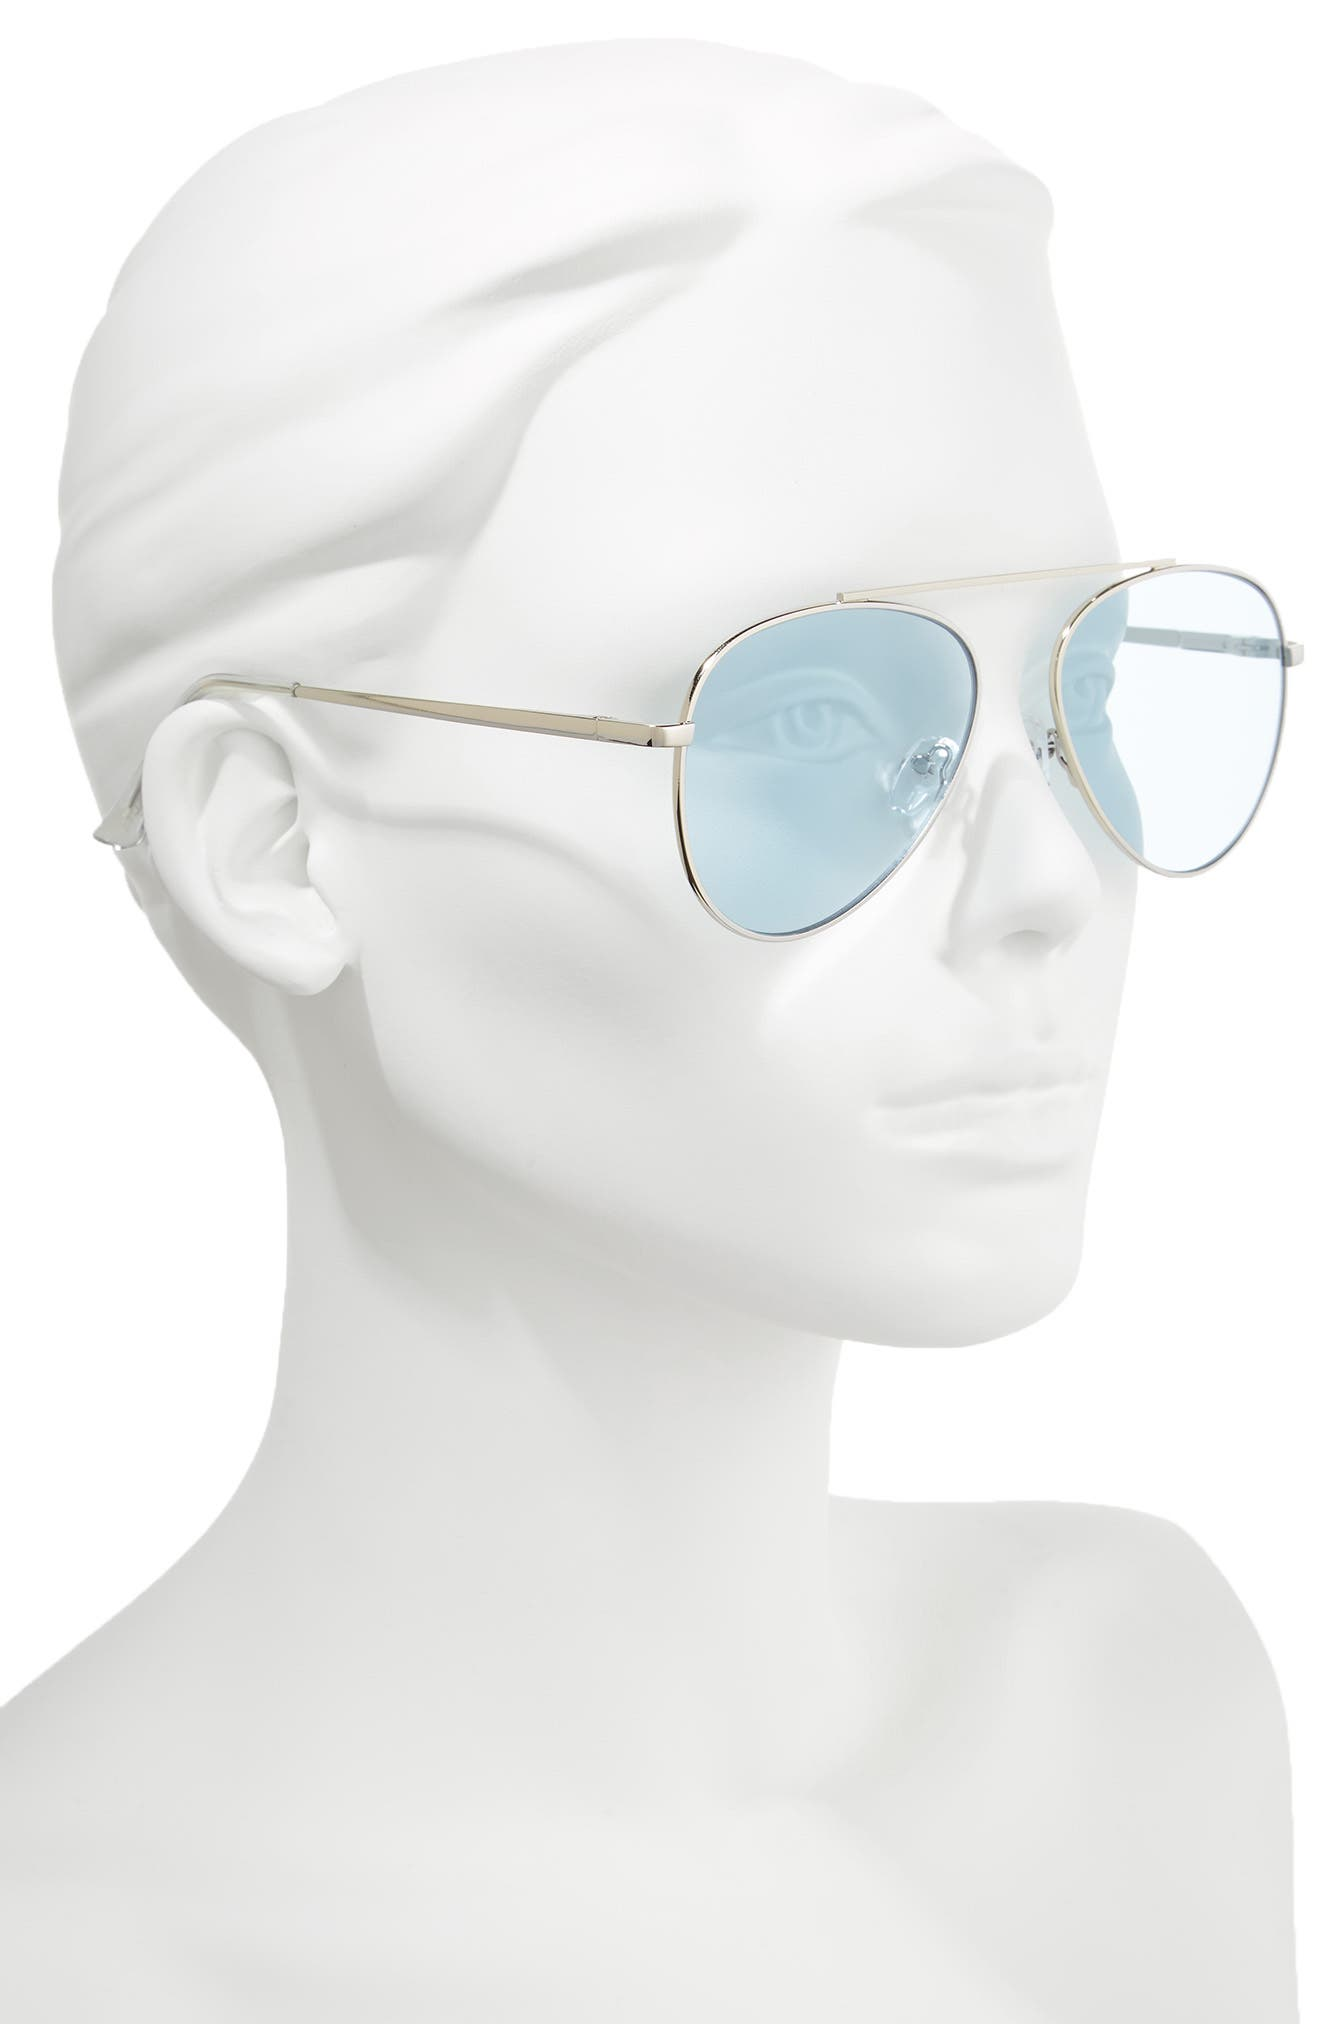 58mm Aviator Sunglasses,                             Alternate thumbnail 2, color,                             040